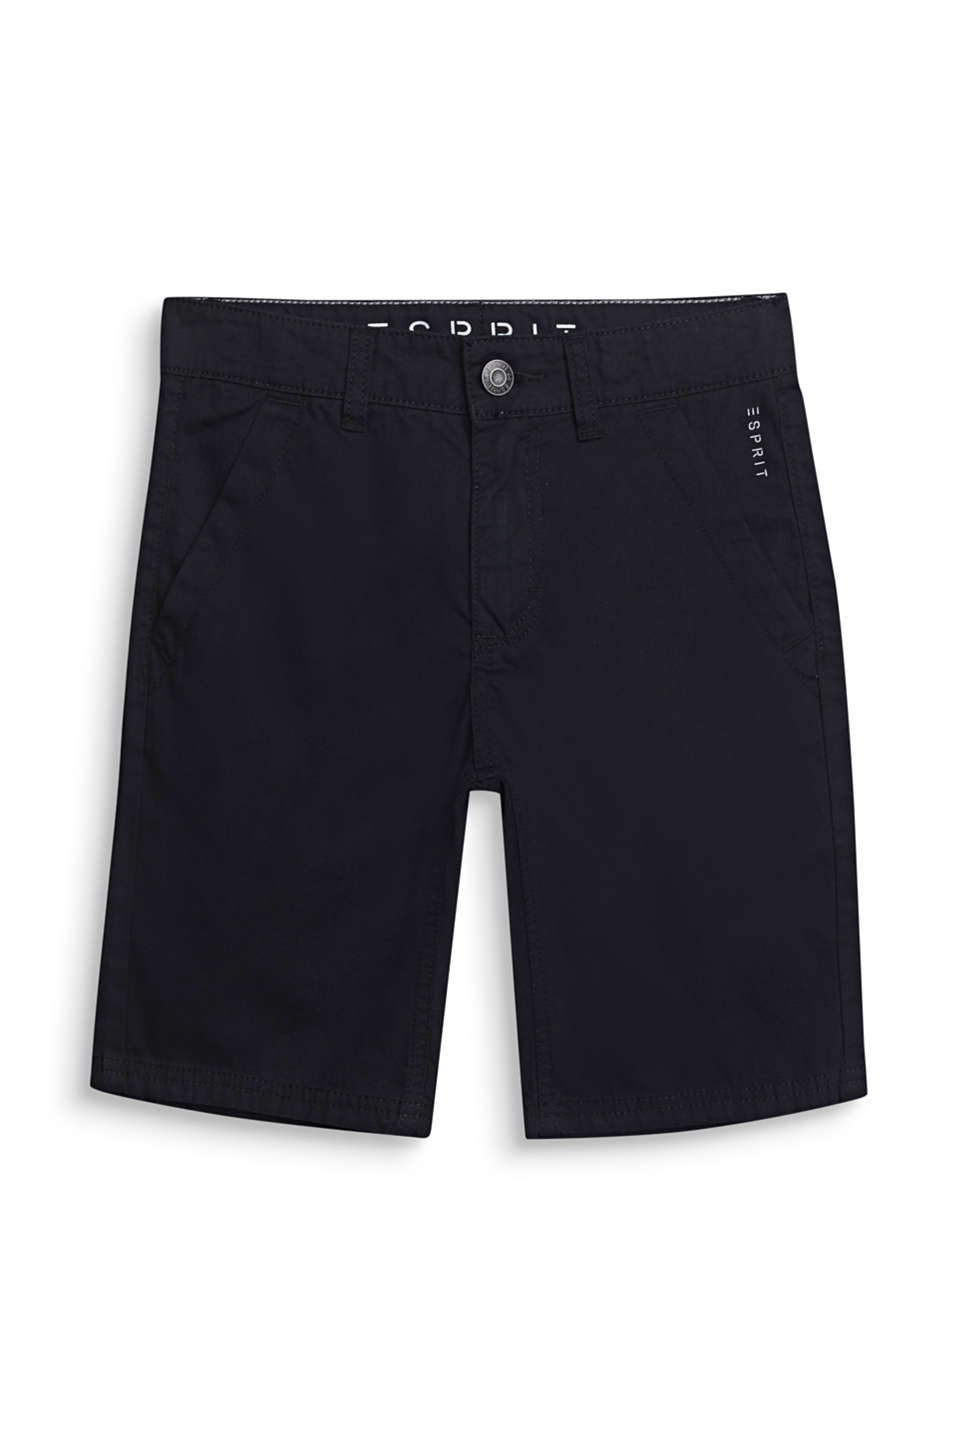 Bermuda shorts in 100% cotton, adjustable waistband, LCBLACK, detail image number 3